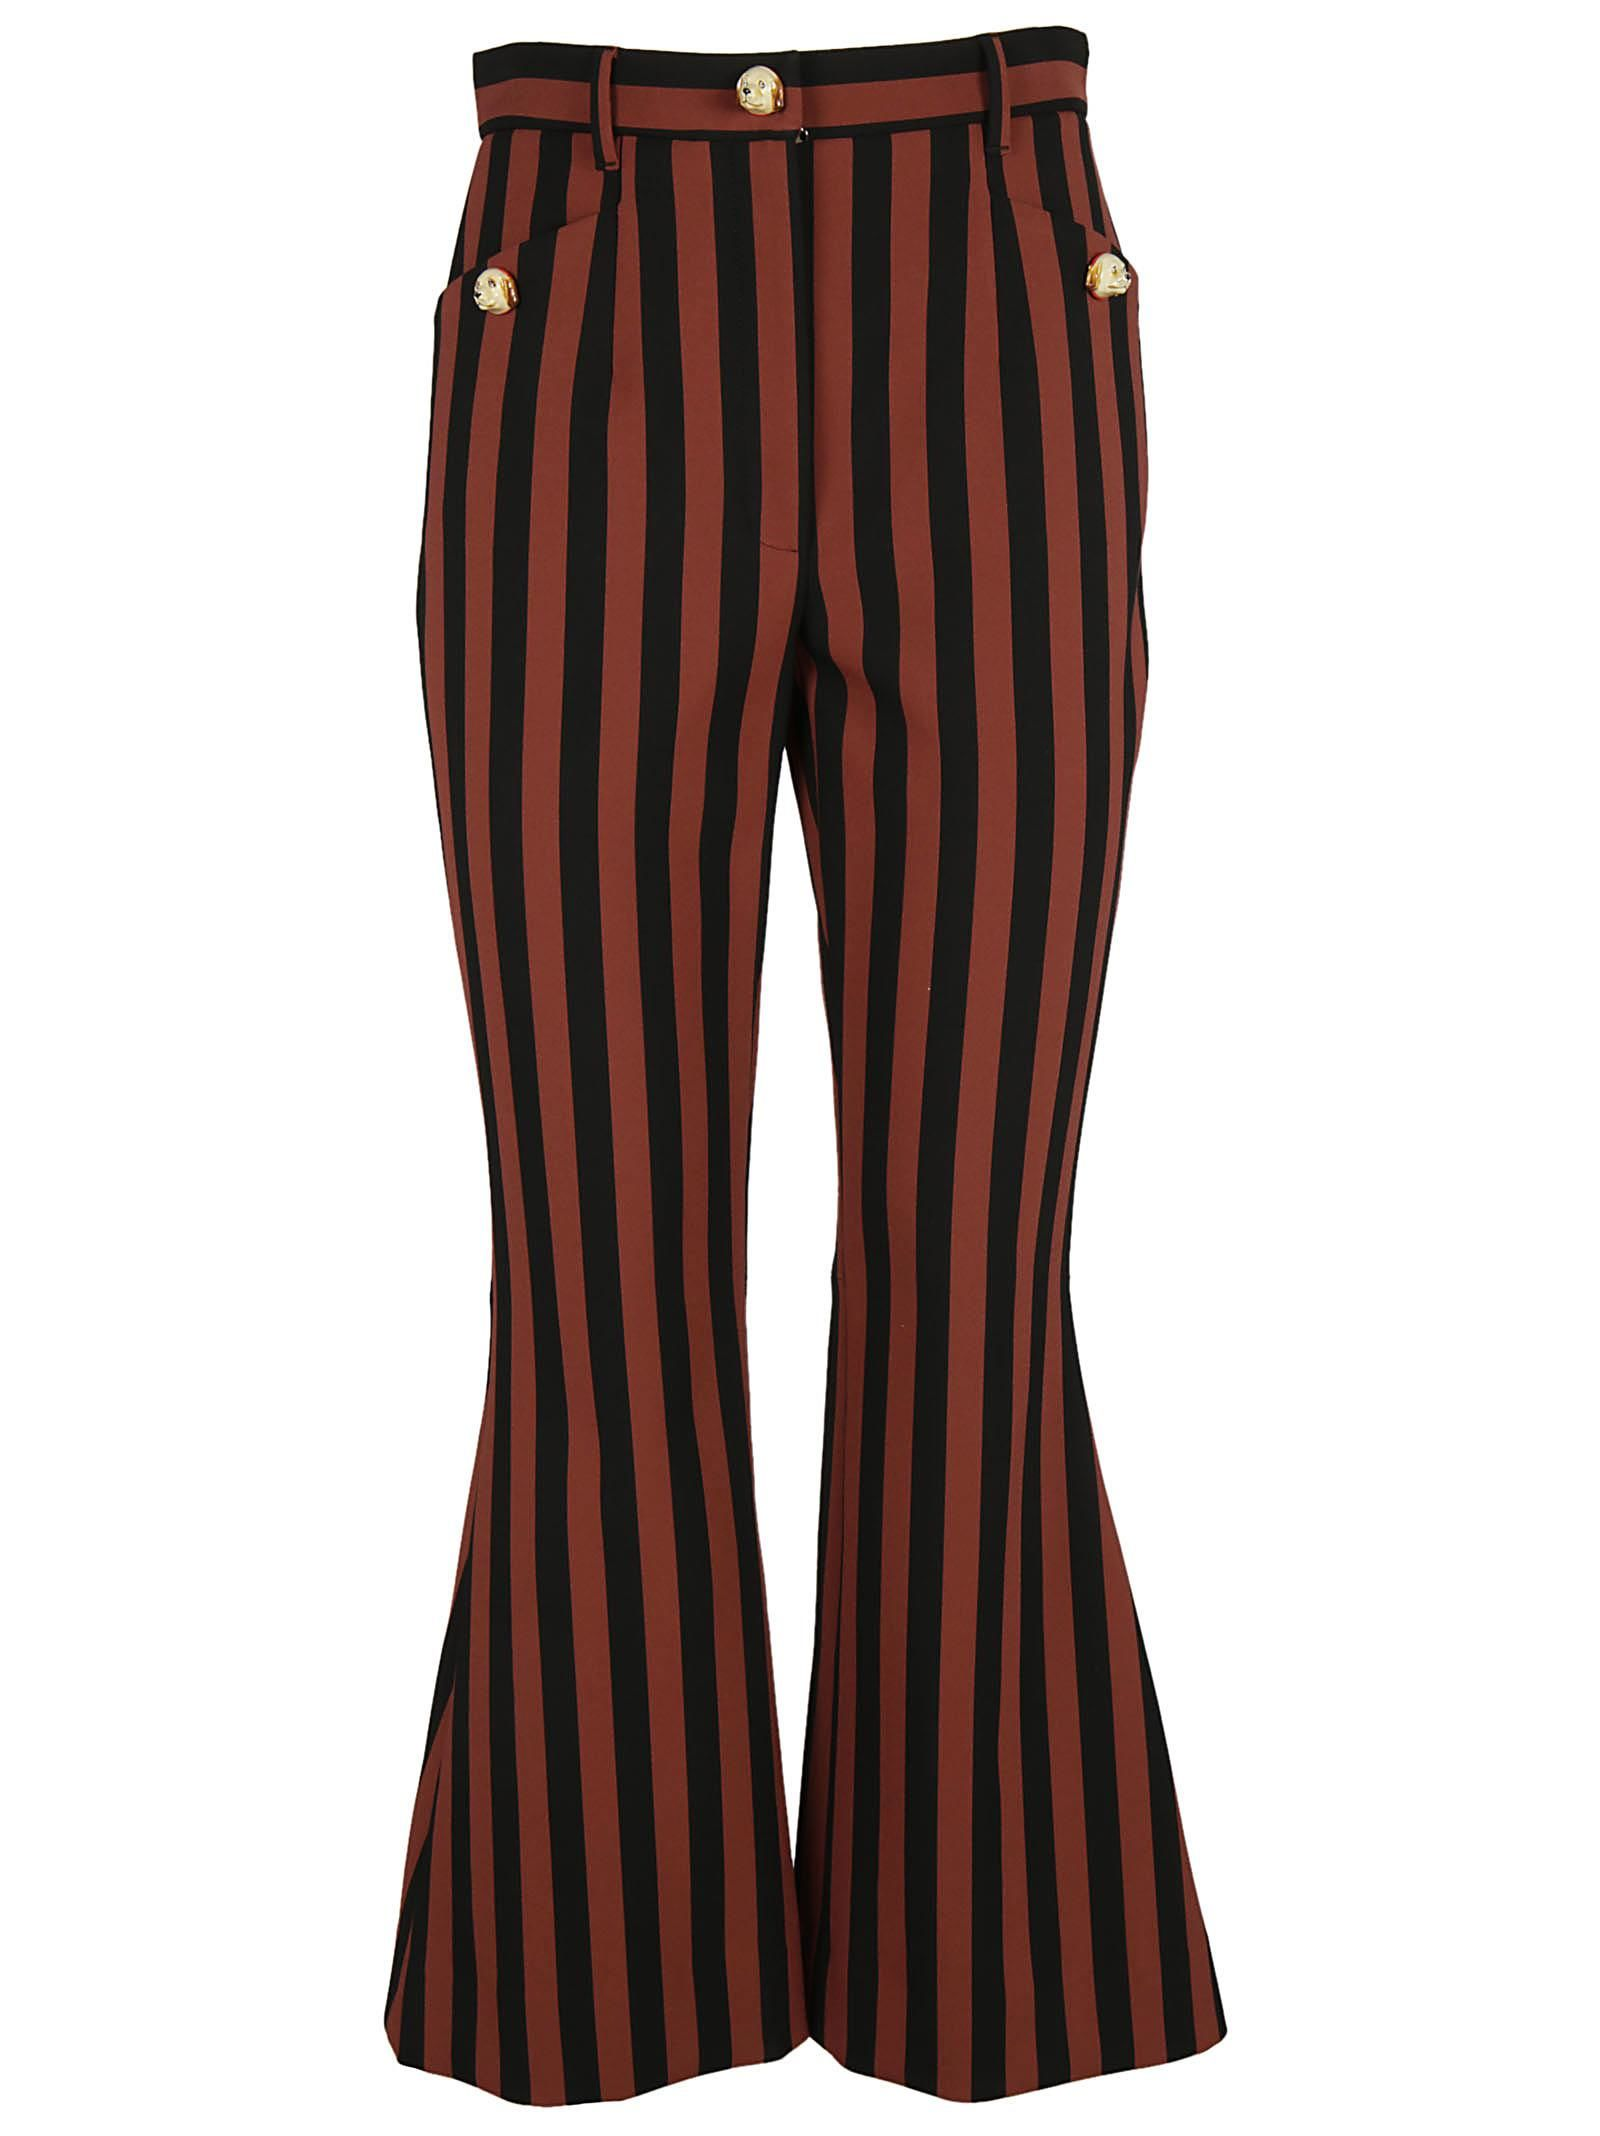 Dolce & Gabbana Dog Detail Buttons Striped Trousers